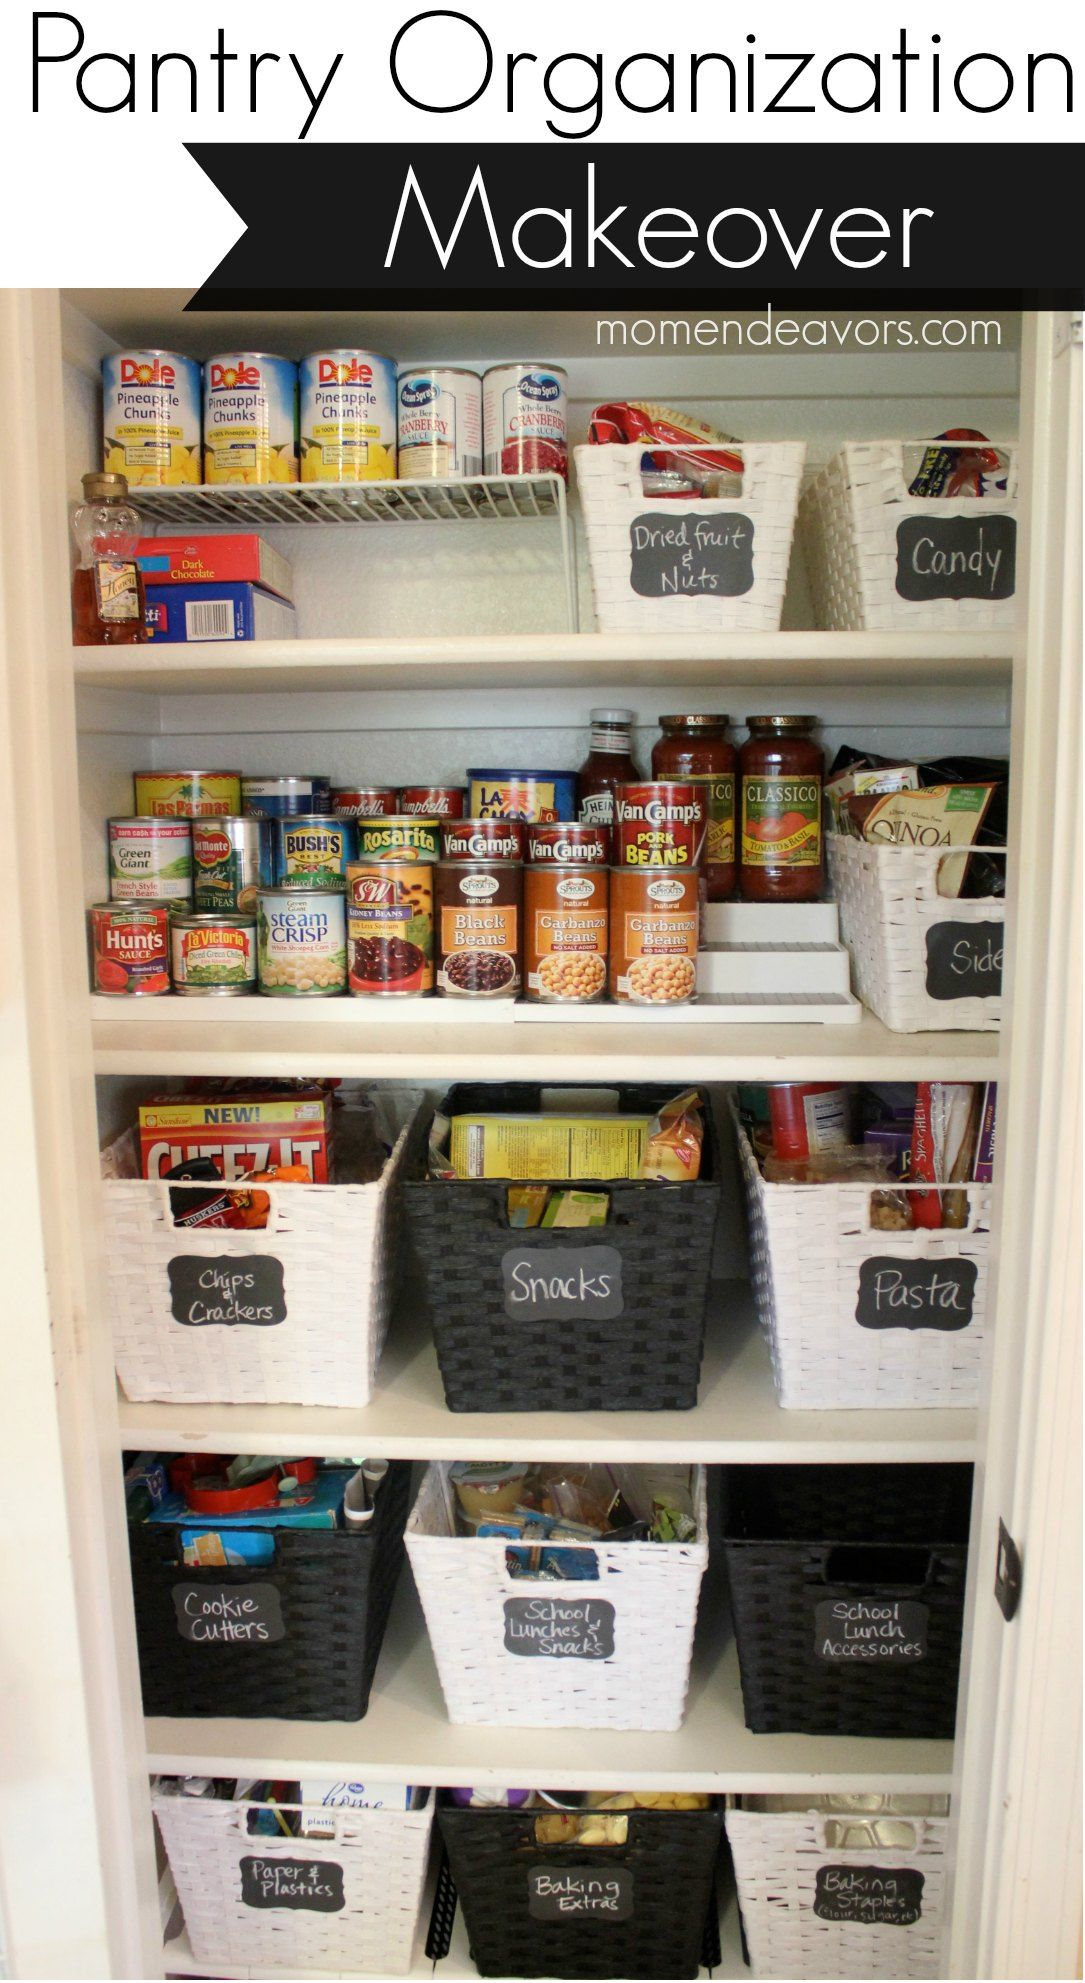 20 Incredible Small Pantry Organization Ideas And Makeovers The Happy Housie Small Pantry Organization Home Organization Pantry Organisation